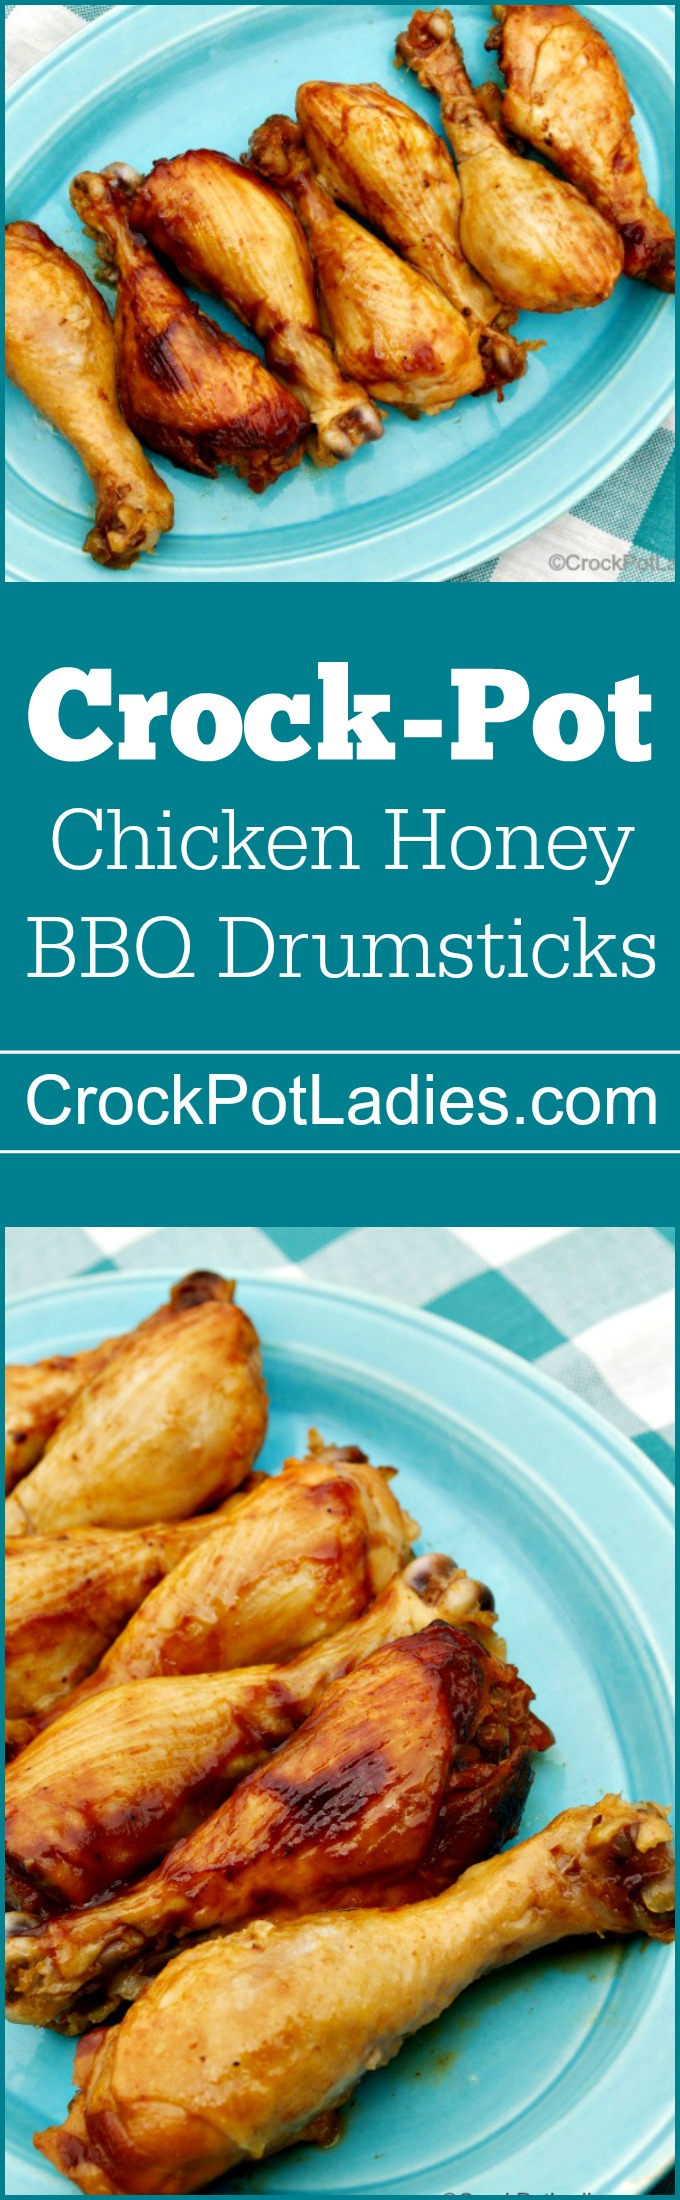 Crock-Pot Chicken Honey BBQ Drumsticks - With just three ingredients (chicken legs, barbecue sauce and honey) this recipe for Crock-Pot Chicken Honey BBQ Drumsticks is sure to please everyone!